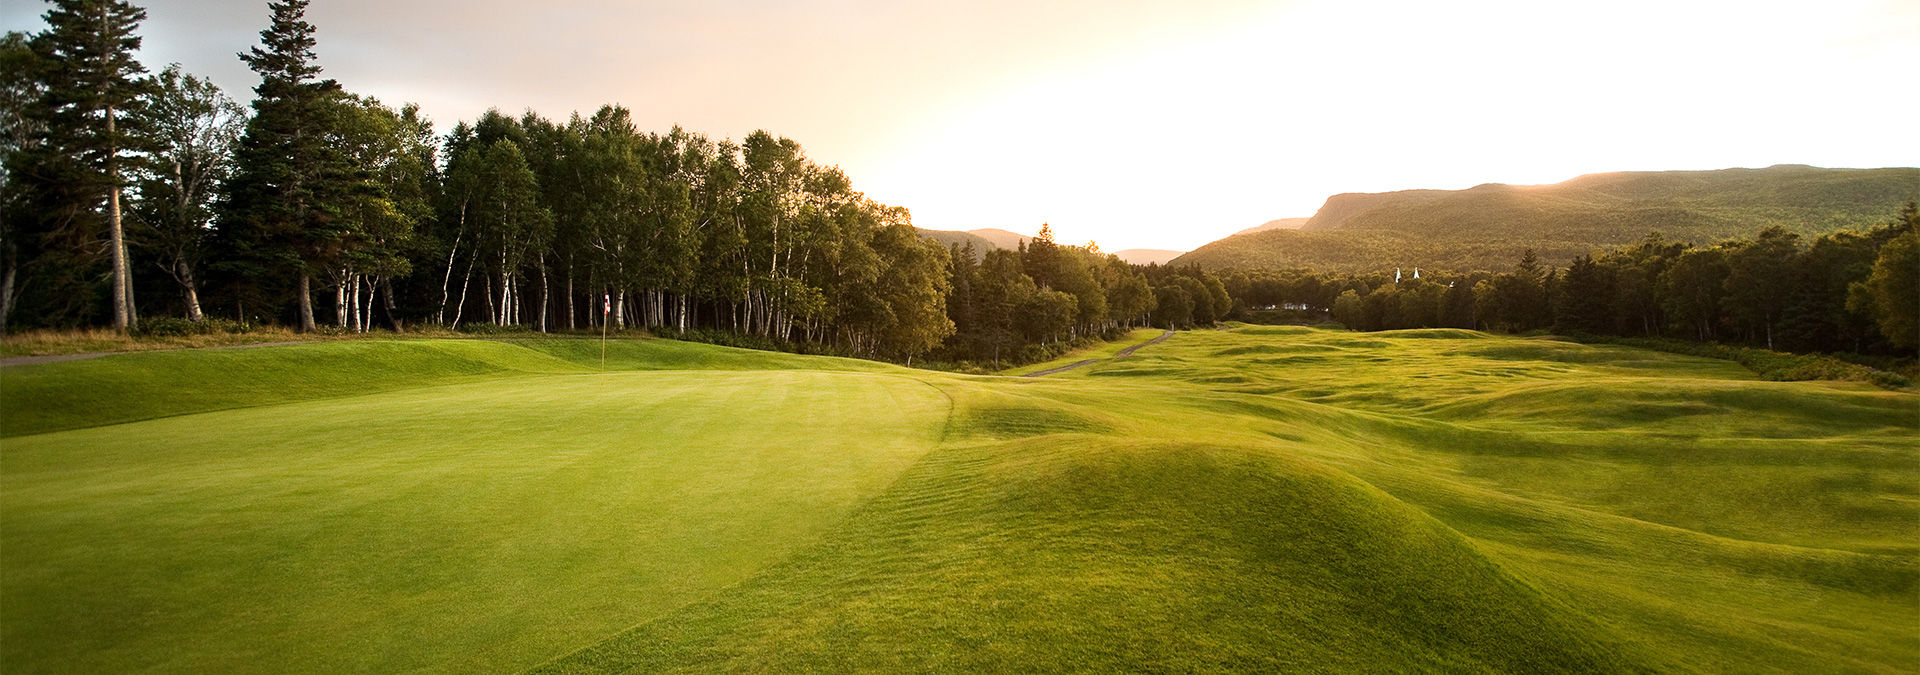 Highlands links golf club cover picture